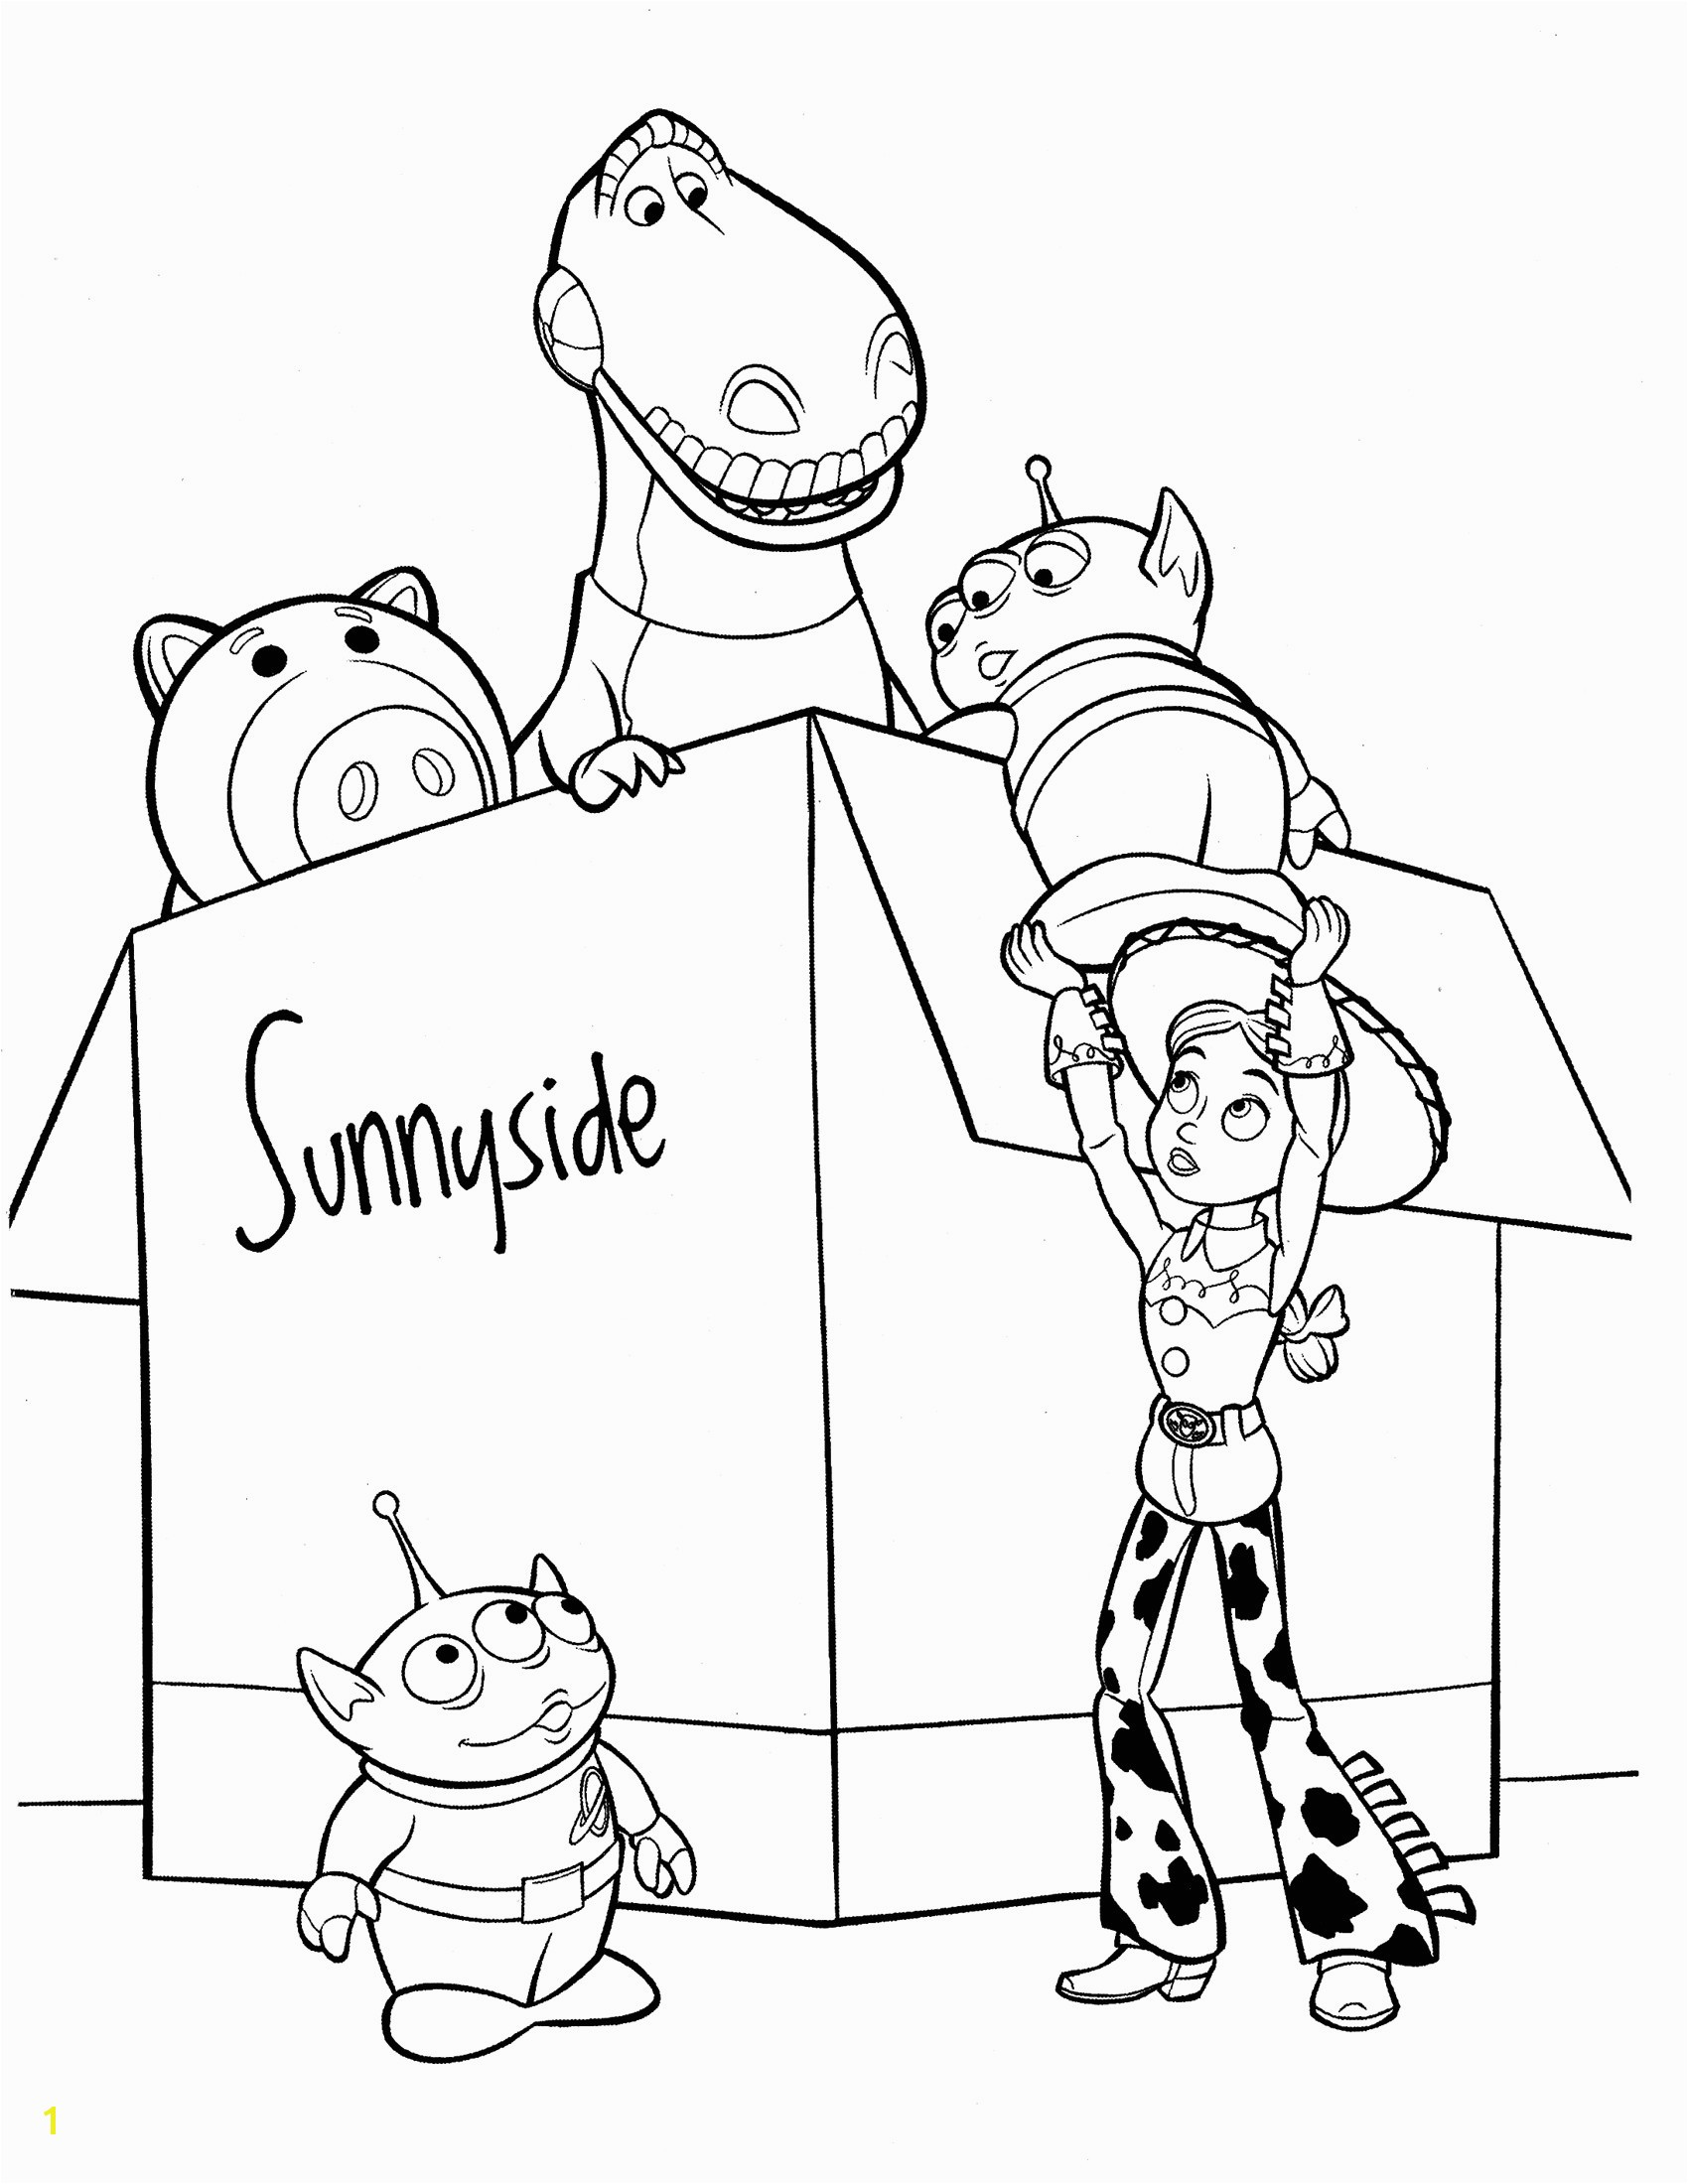 Toy Story 3 Jessie Coloring Pages toy Story Coloring Page Cool Coloring Pages